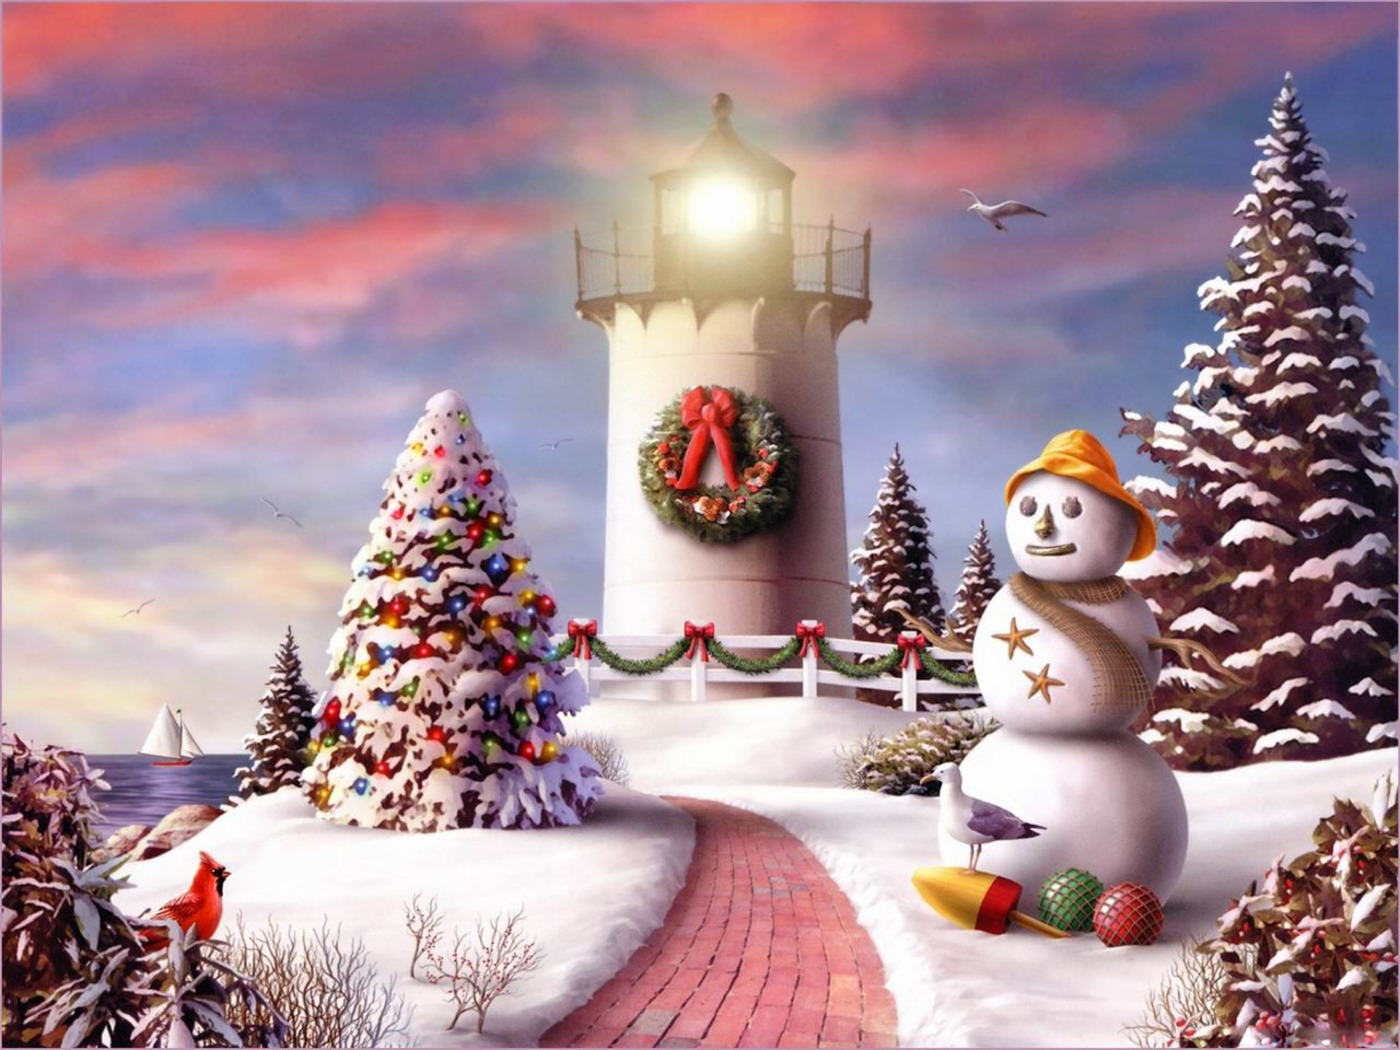 free download desktop wallpaper 2010 christmas wallpapers